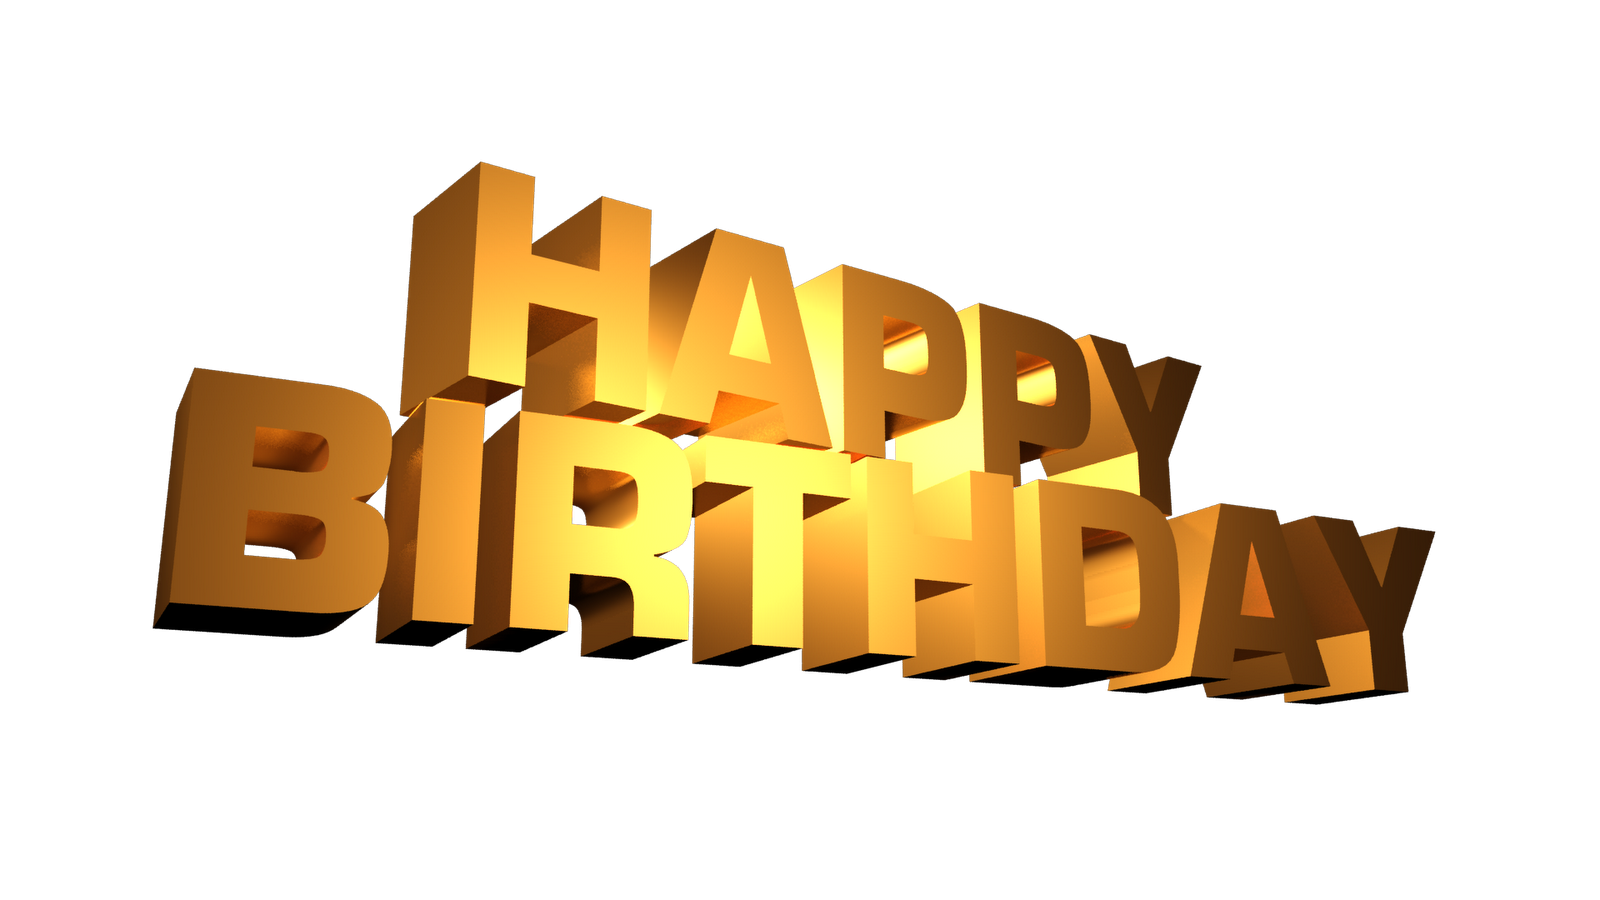 Happy birthday png text. Hd pictures transparent images